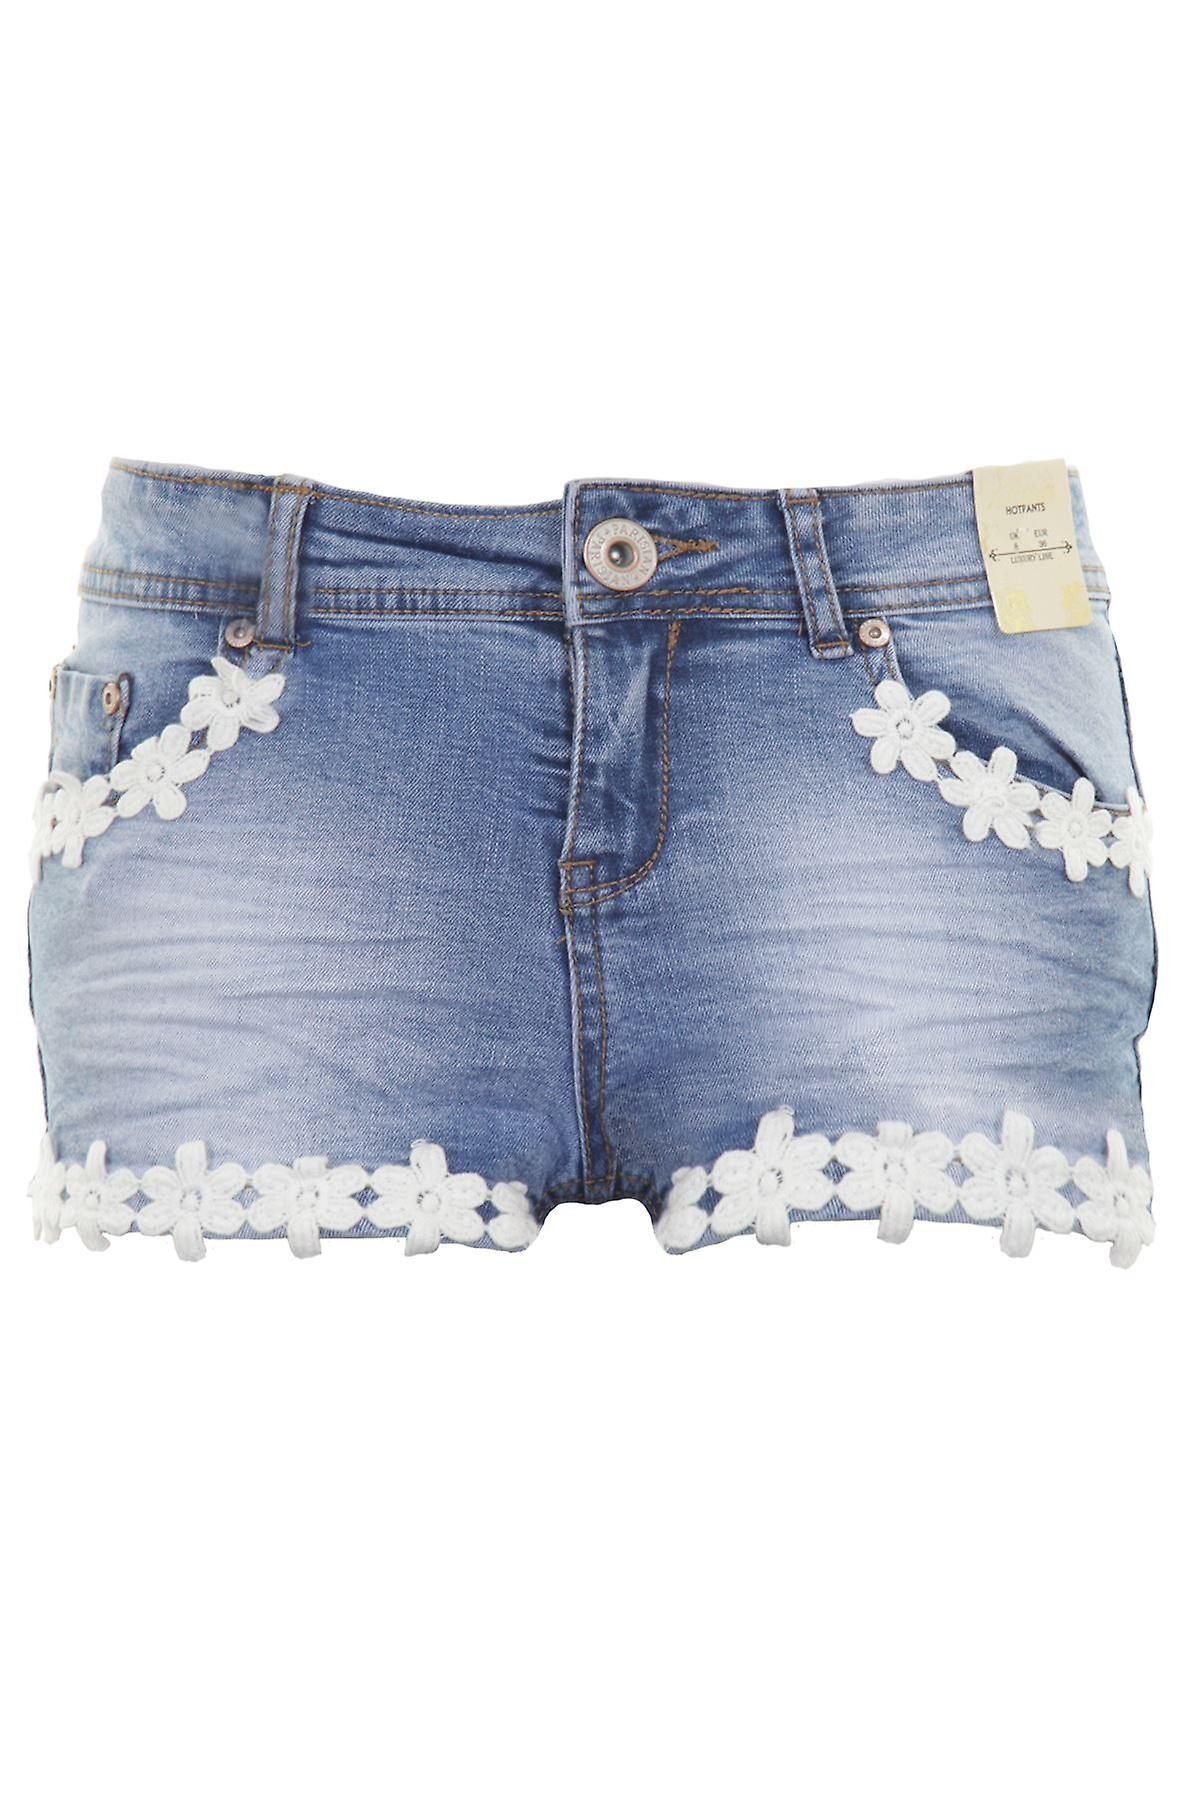 Ladies Floral Flower Crochet Trim Acid Wash Denim Low Rise Hot Pants Shorts